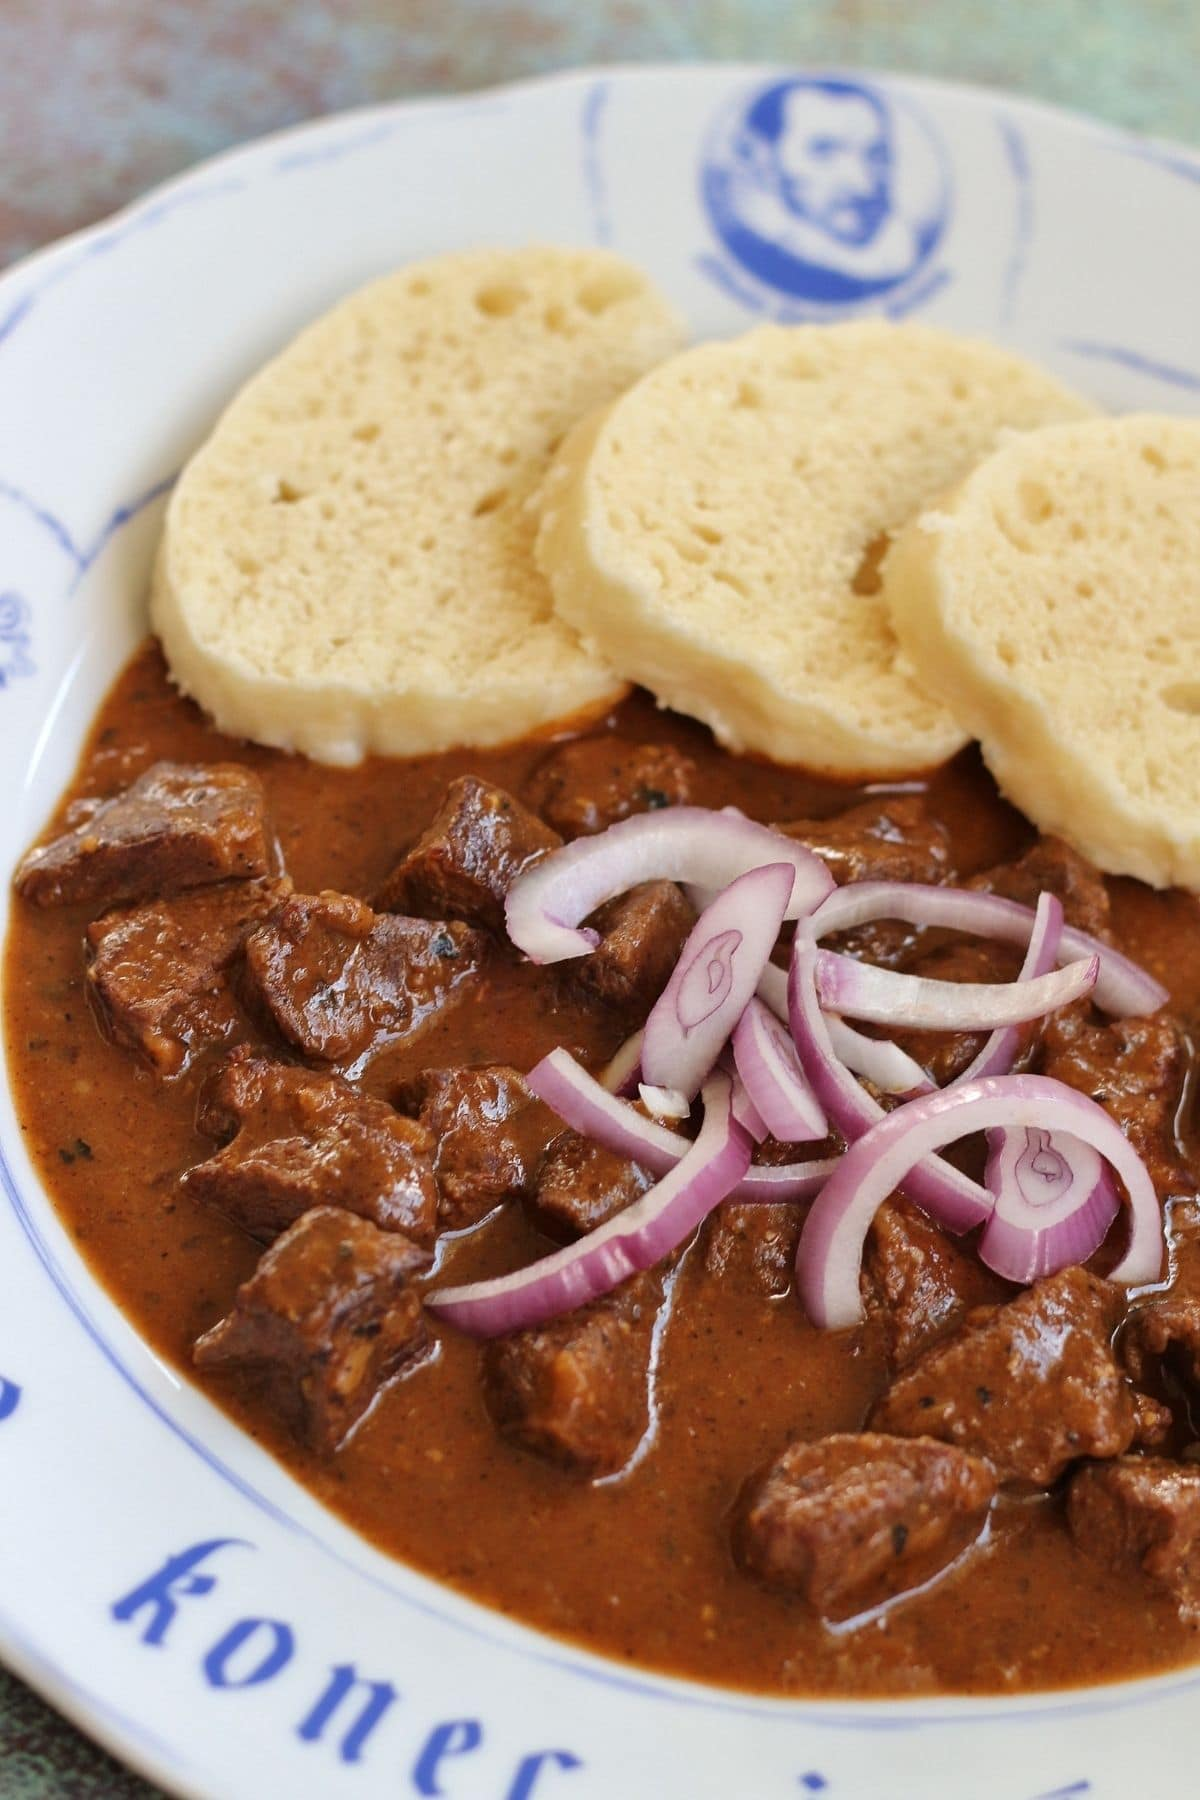 Czech goulash with sliced red onion and dumplings on a white plate